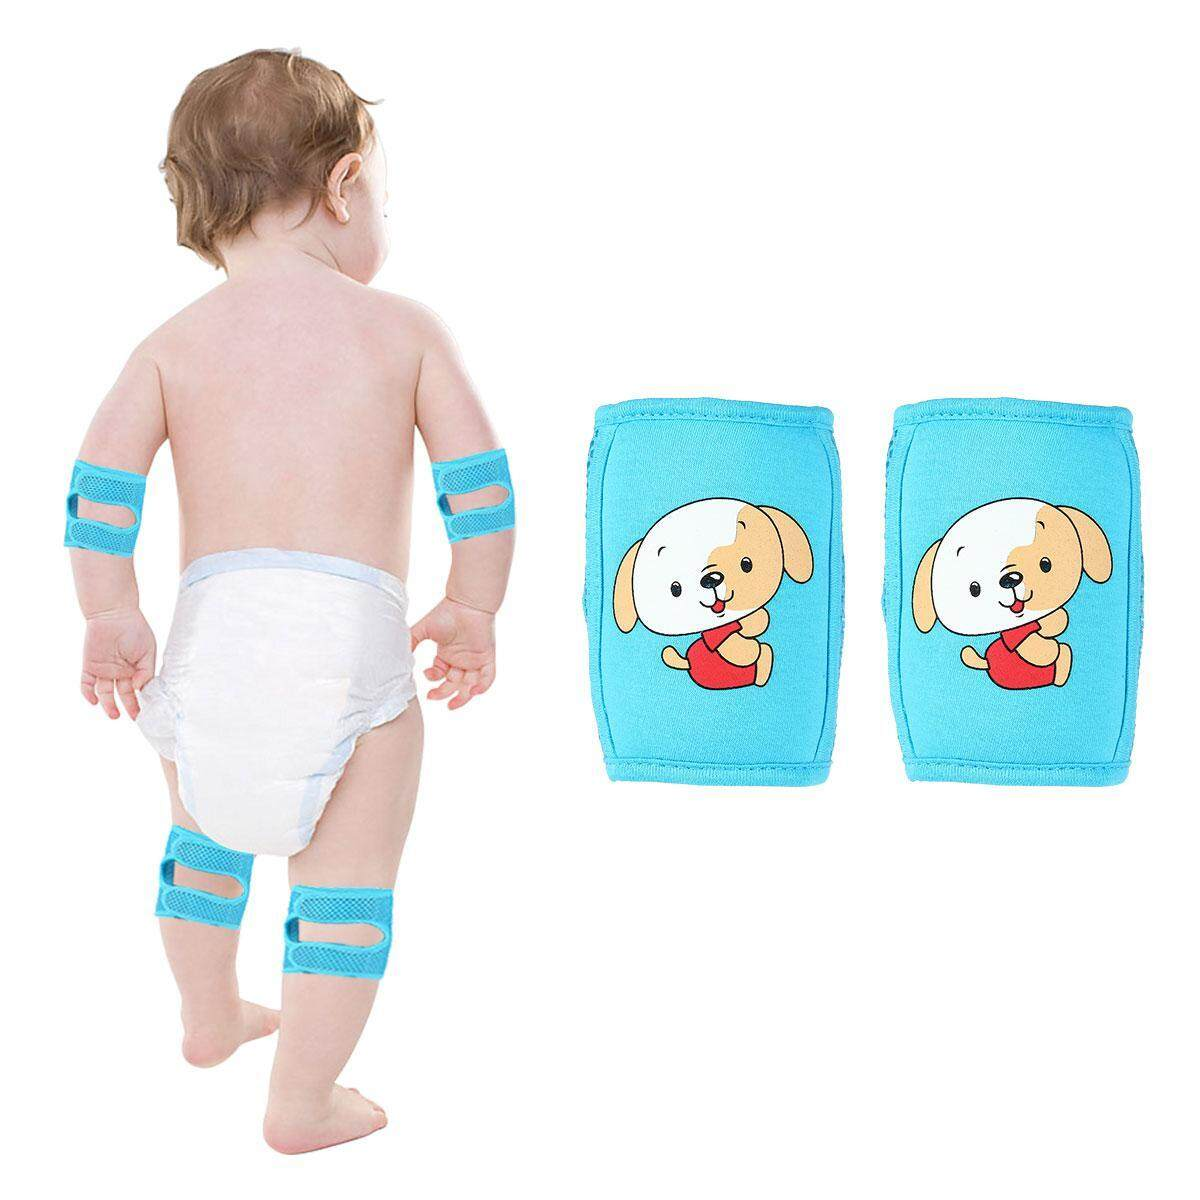 Girls' Baby Clothing 1 Pair Protector Safety Mesh Leg Warmer Children Kids Cartoon Crawling Elbow Infants Toddlers Baby Knee Pads